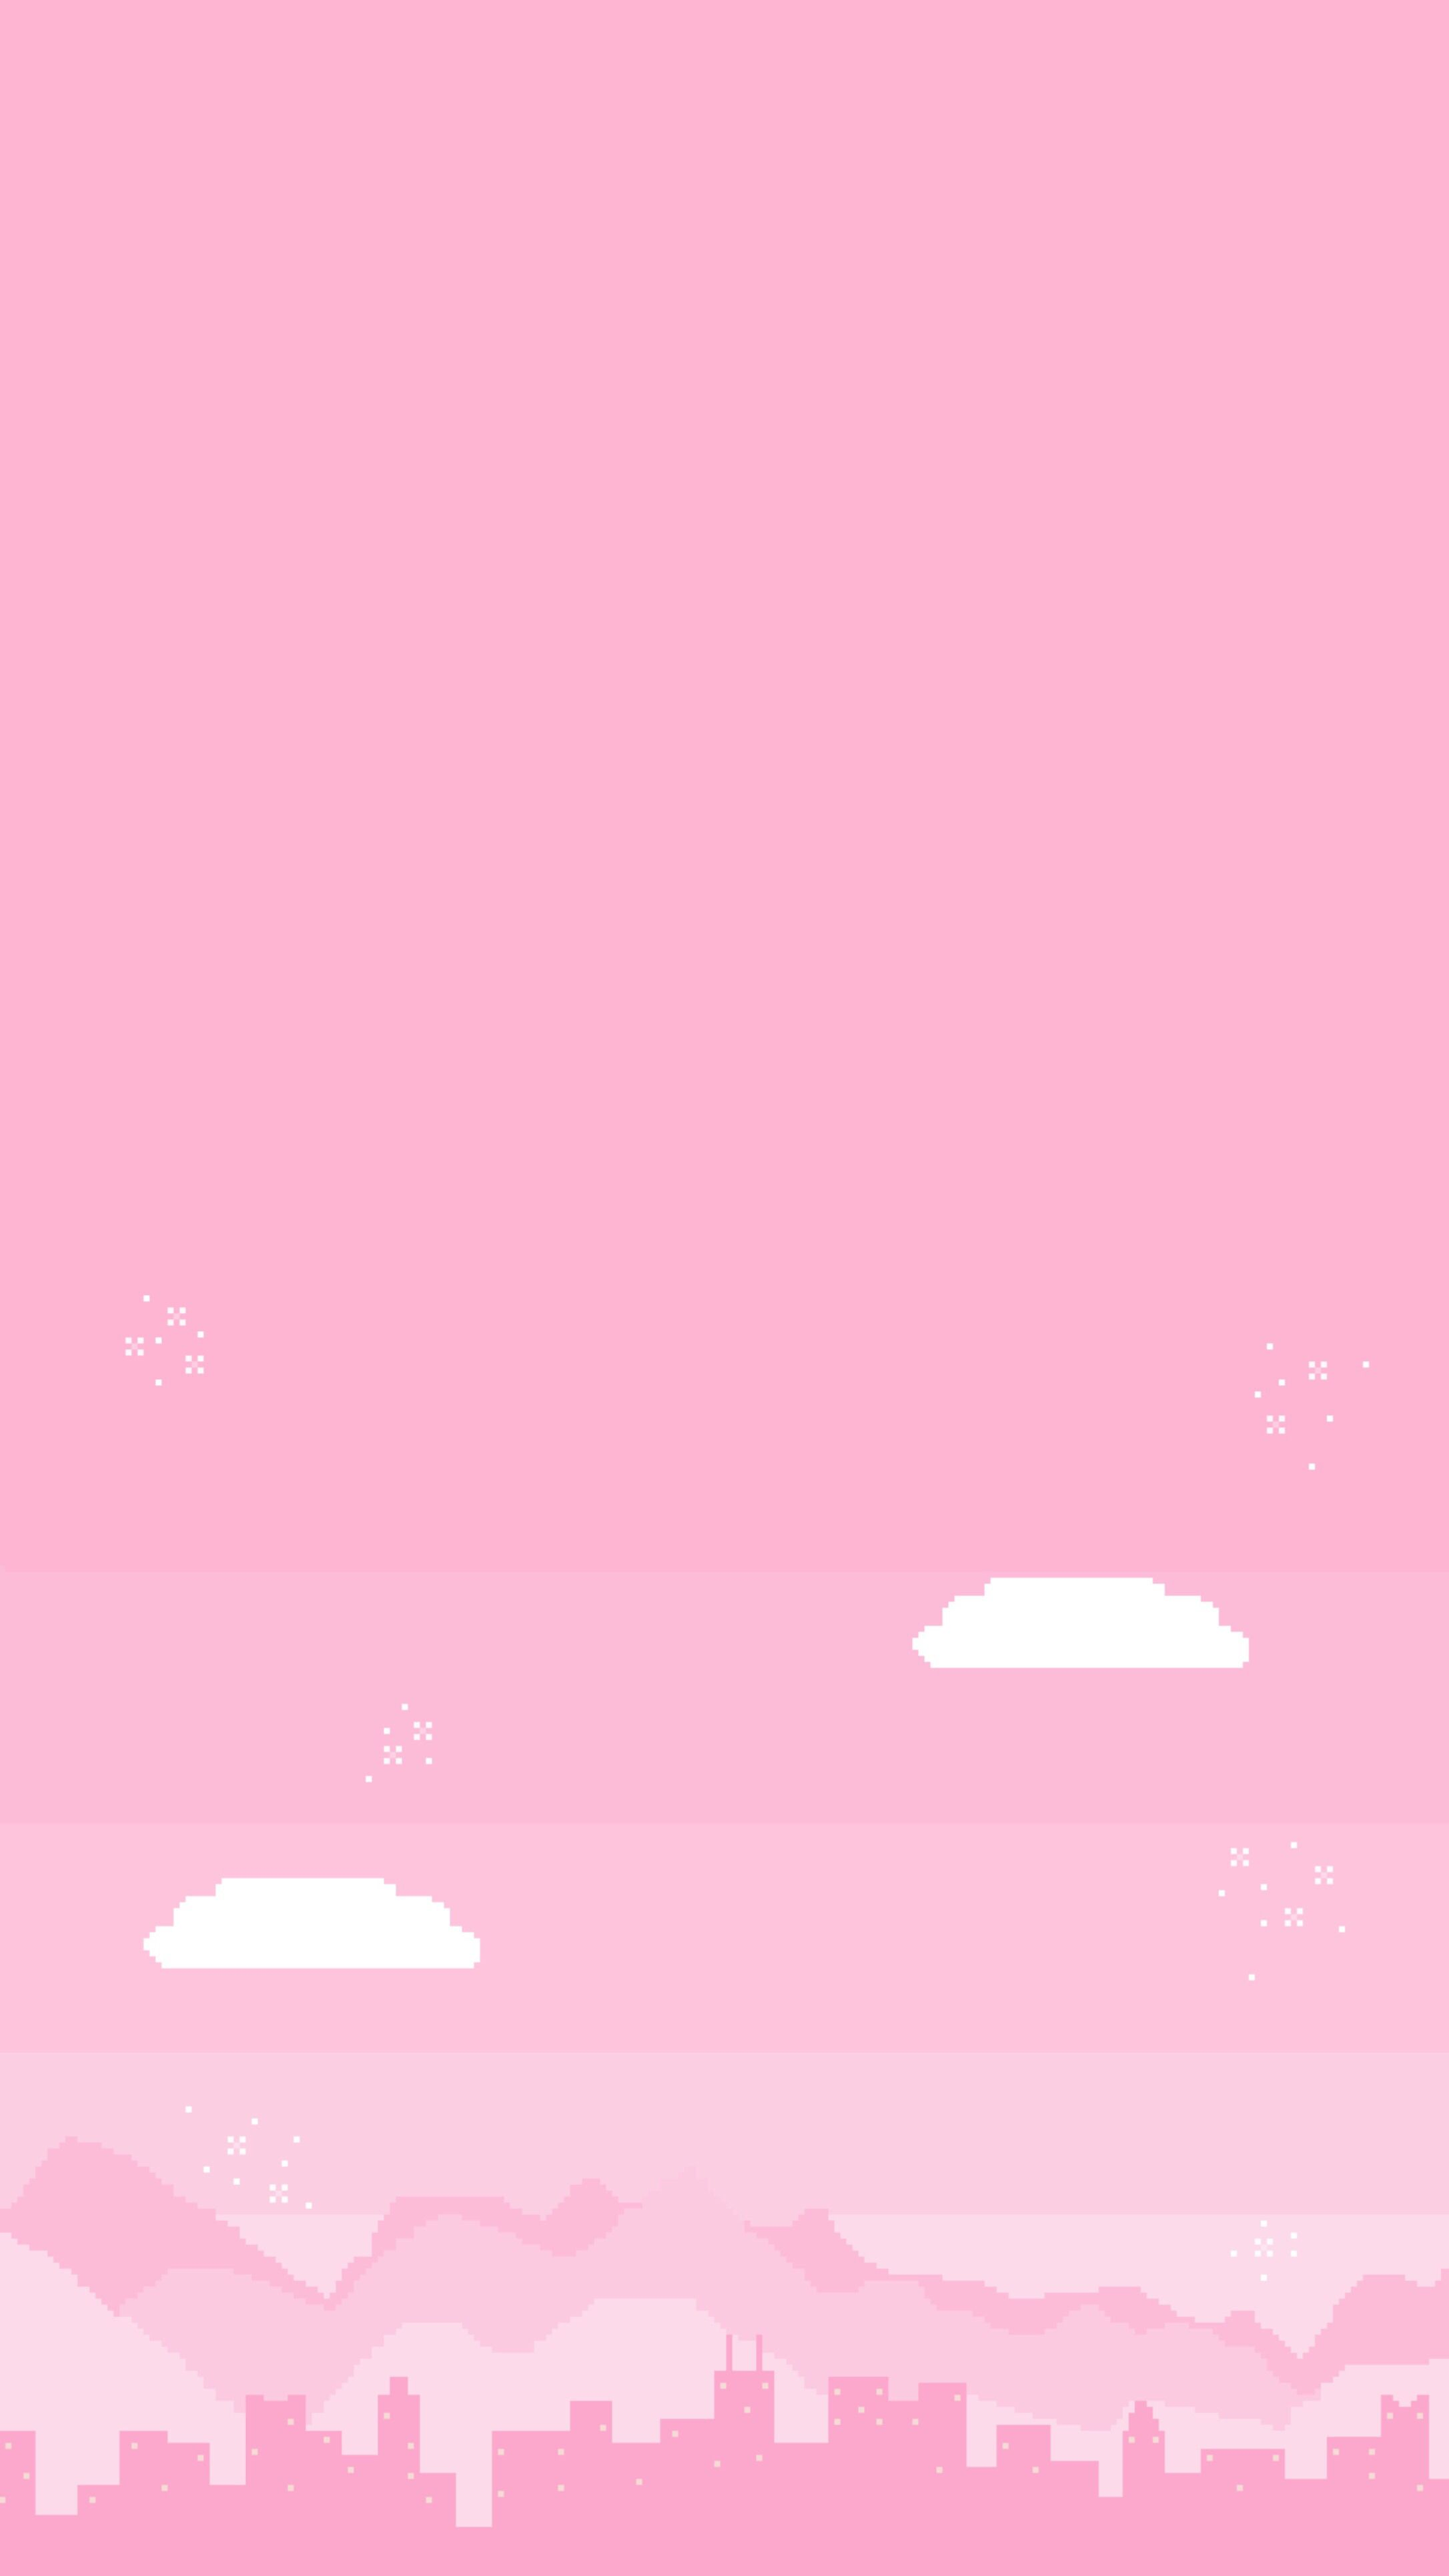 Wallpaper Pink Pixel City In 2019 Pink Aesthetic